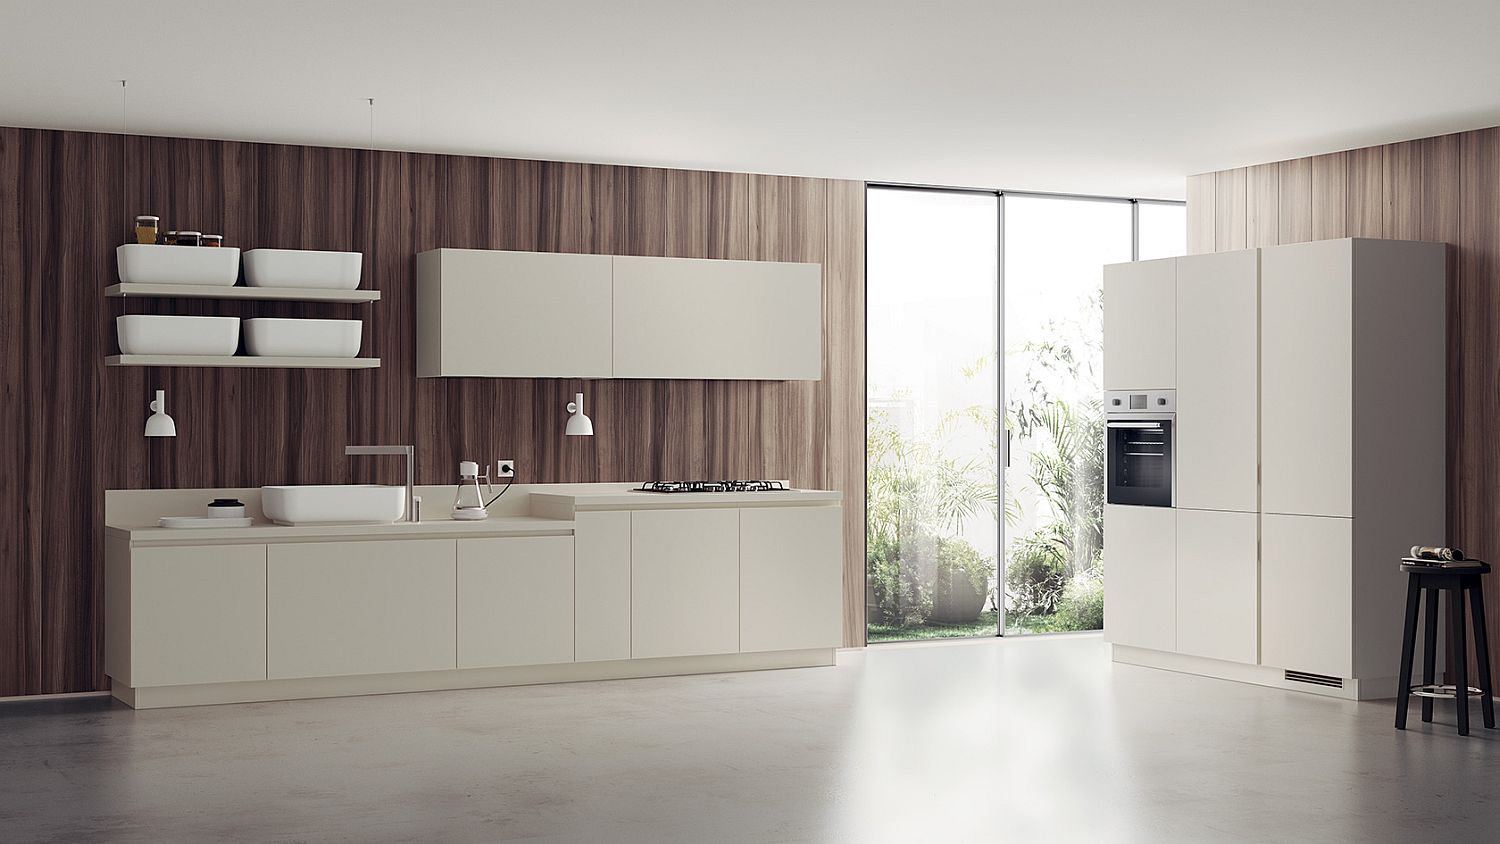 Gray, white and wood combine to create a stunningly minimal kitchen